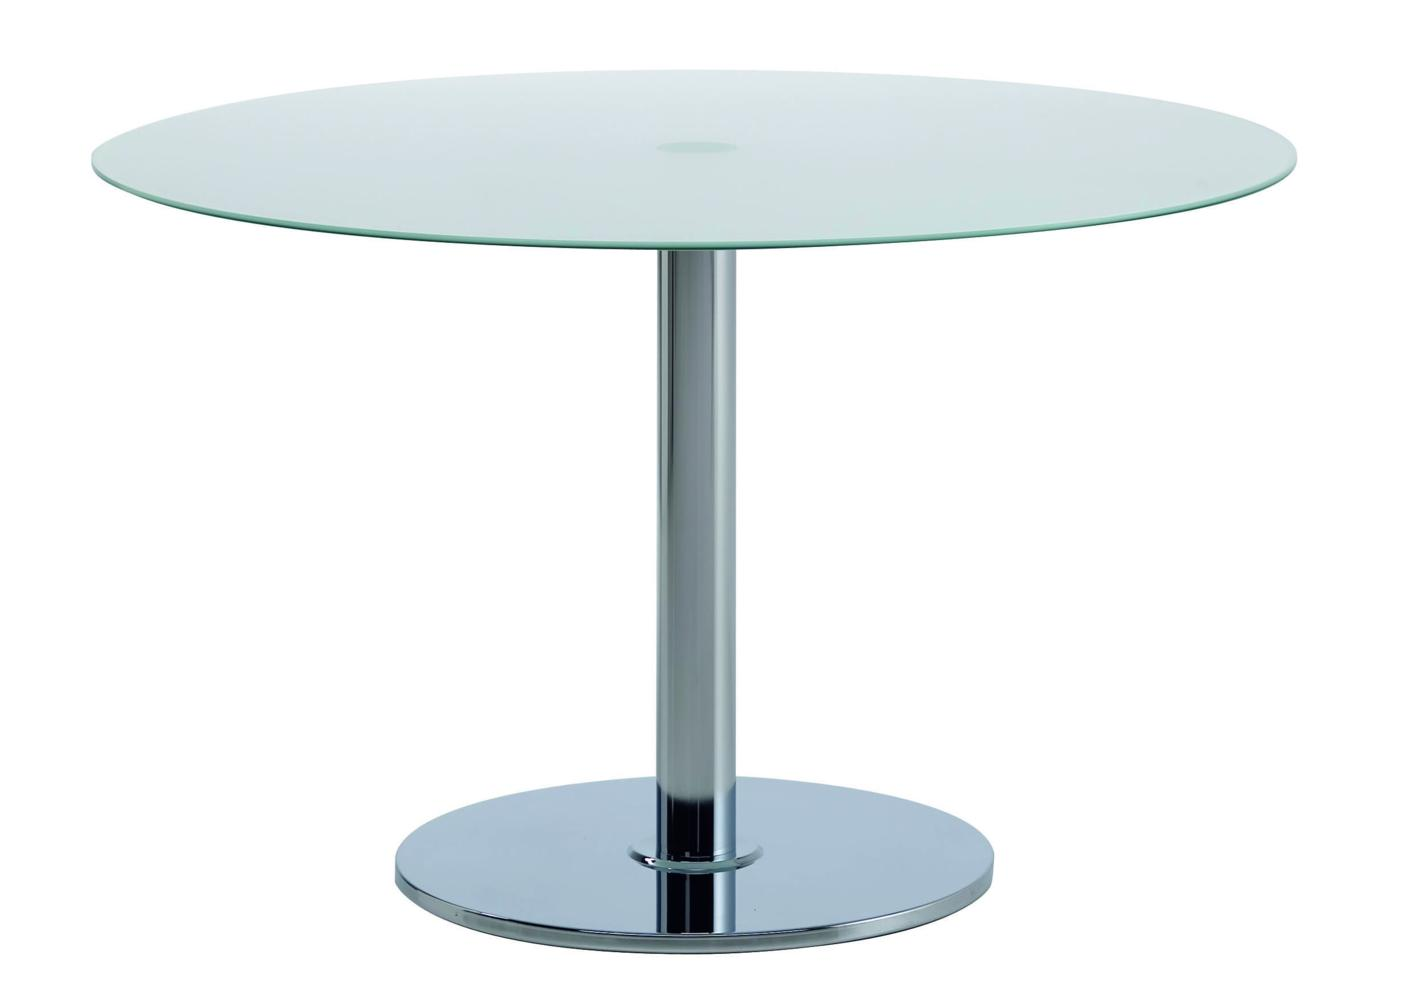 Table ronde pied central bois massif images for Table ronde 120 pied central